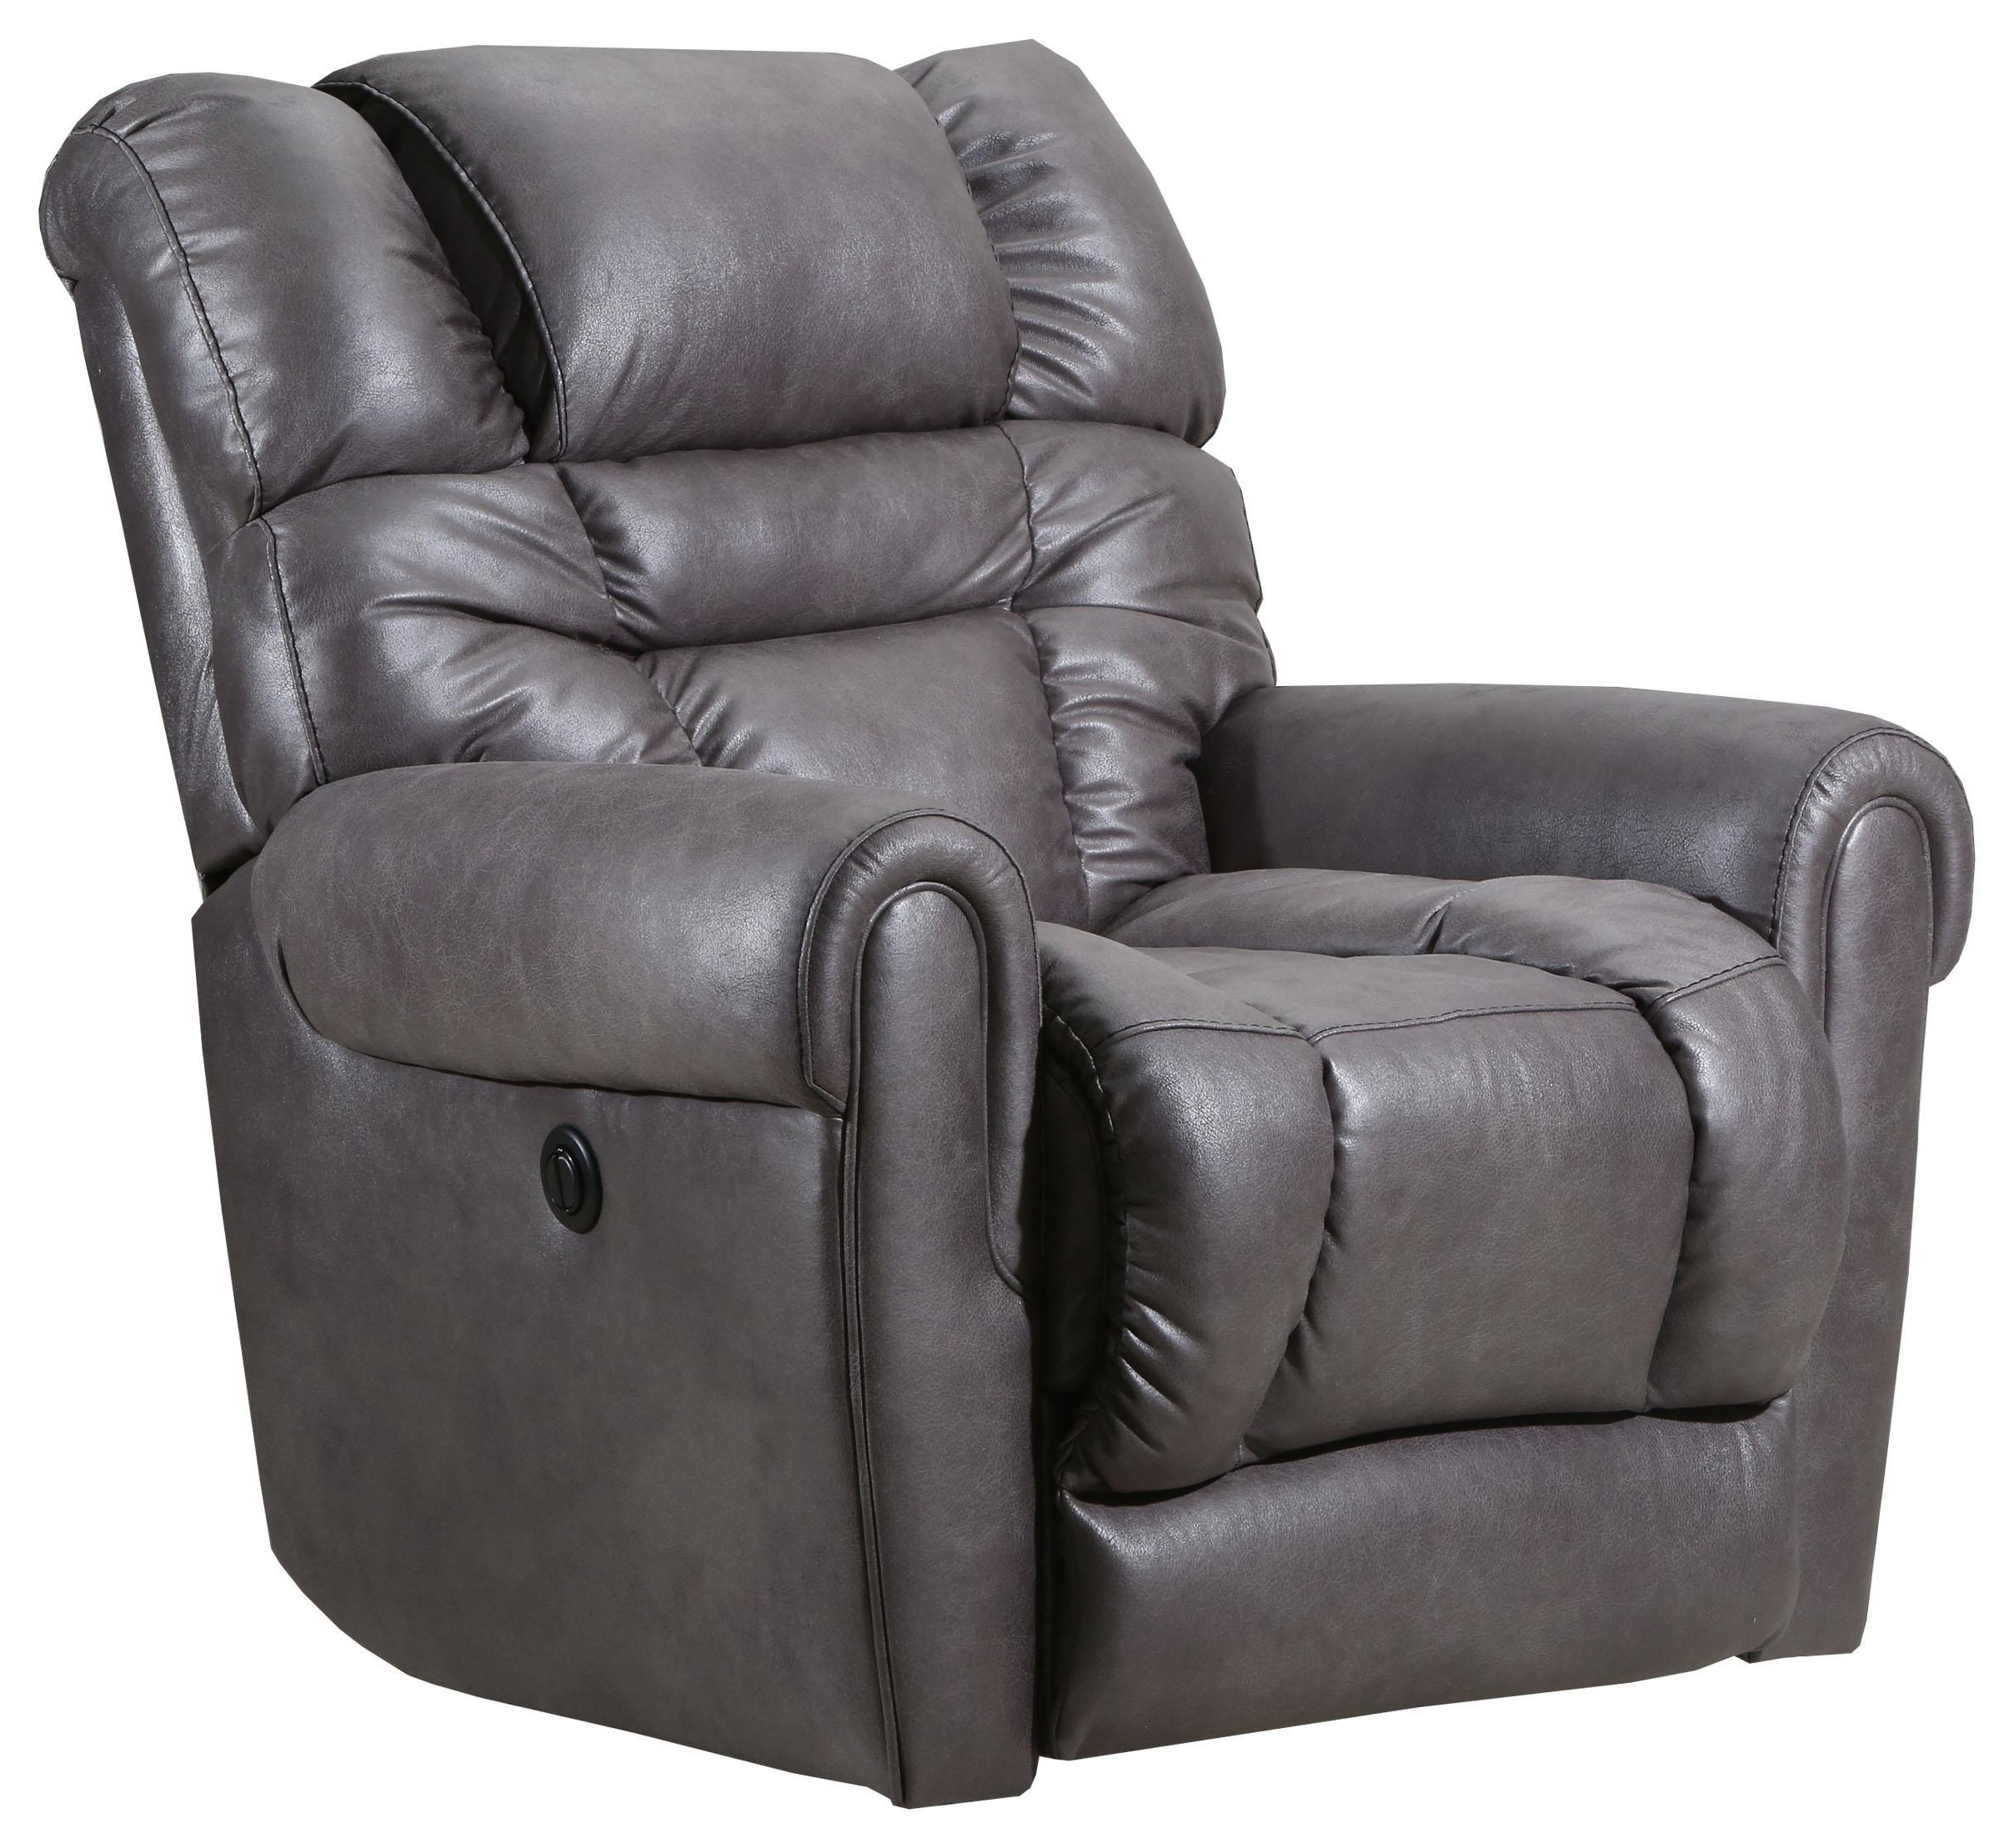 Recliners 2019 Gatlin Rocker Recliner